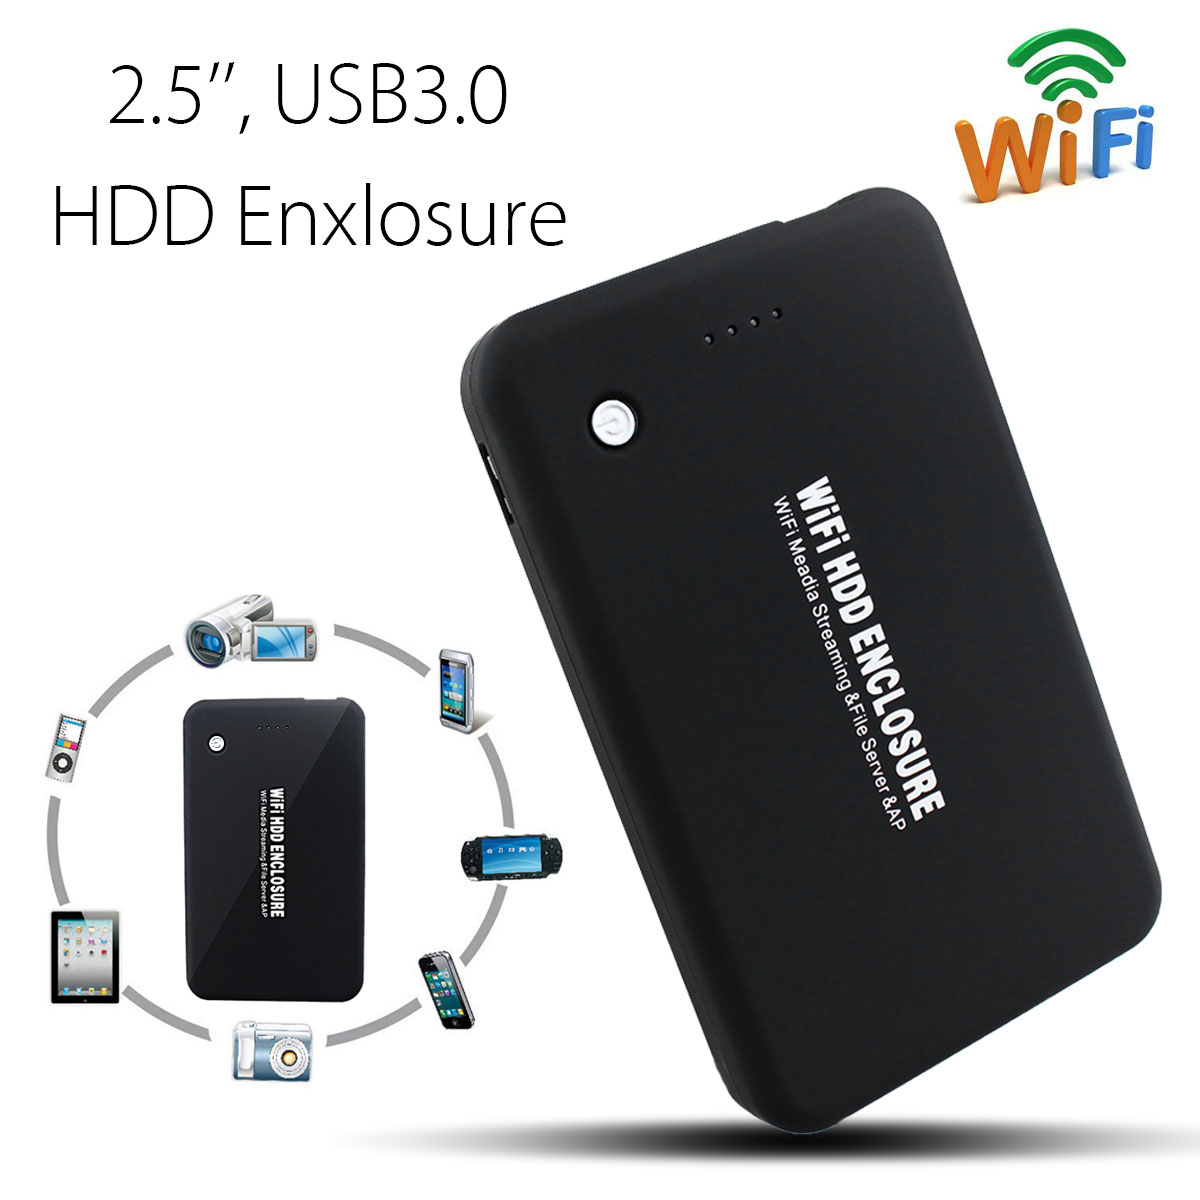 2.5 Inch HDD Case 300mbps Wifi Router External USB 3.0 5gbps Hard Disk Enclosure 4000mah Power Bank for 1TB HDD SSD